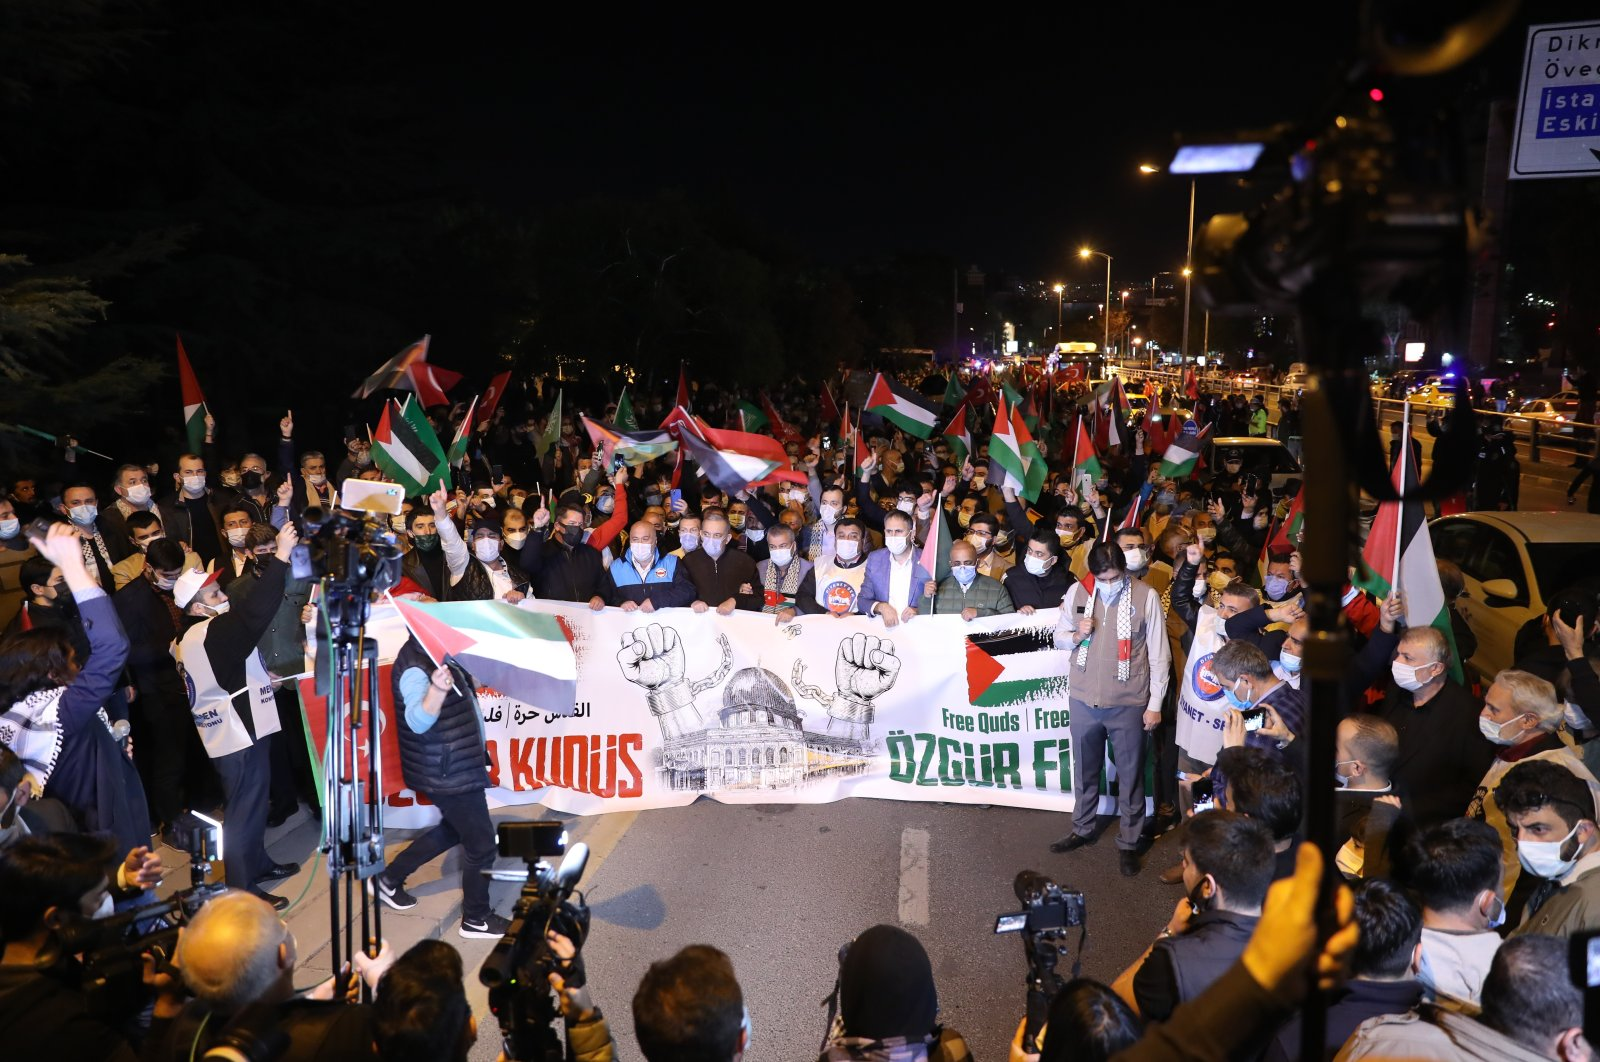 """People march in protest against Israeli violence, holding a banner saying """"Free Jerusalem, Free Palestine,"""" in the capital Ankara, Turkey, May 10, 2021. (Sabah Photo)"""